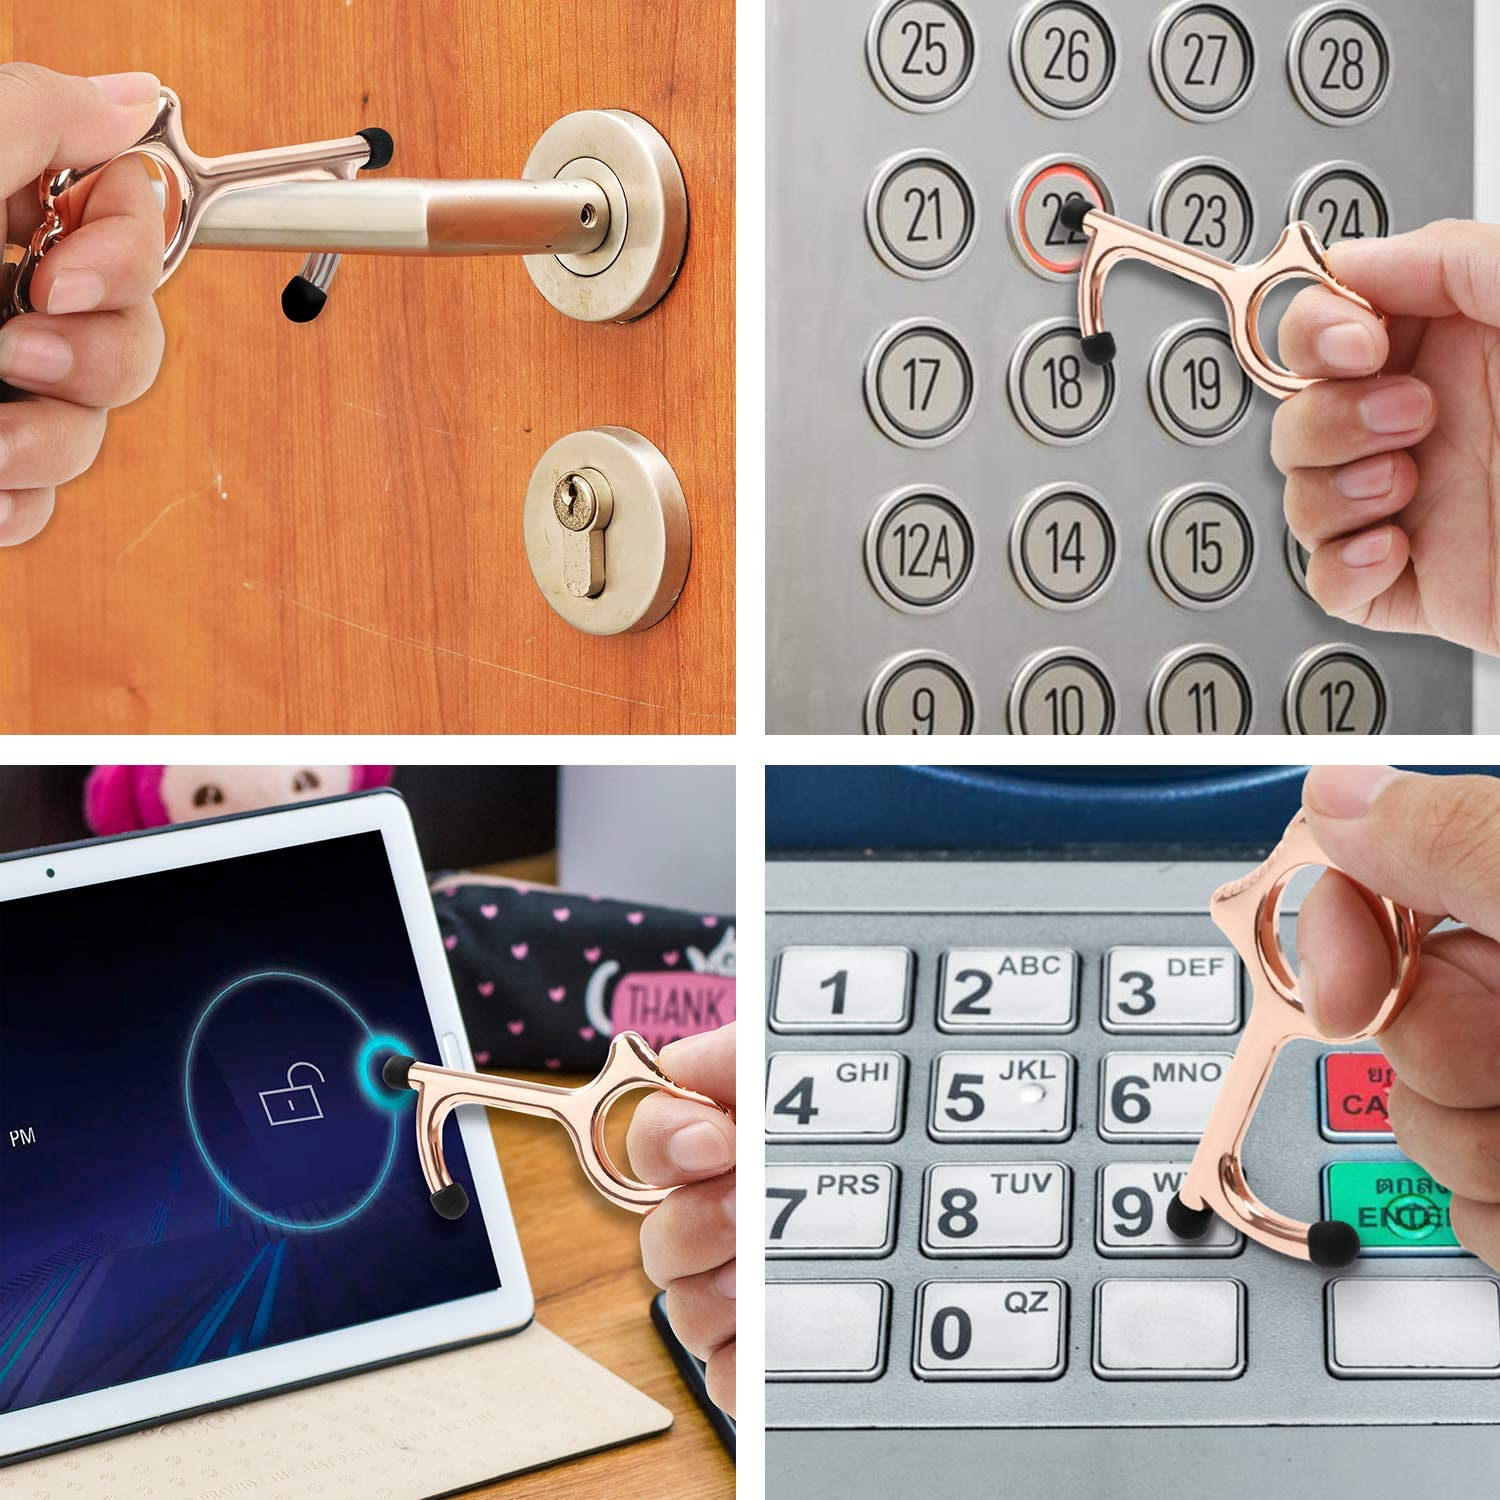 Healthy Portable Contactless Stylus Keychain Clean Key Keep Hands Clean Rose Gold Screen Touch No Touch Door Opener /& Closer Stick for Push The Elevator Button